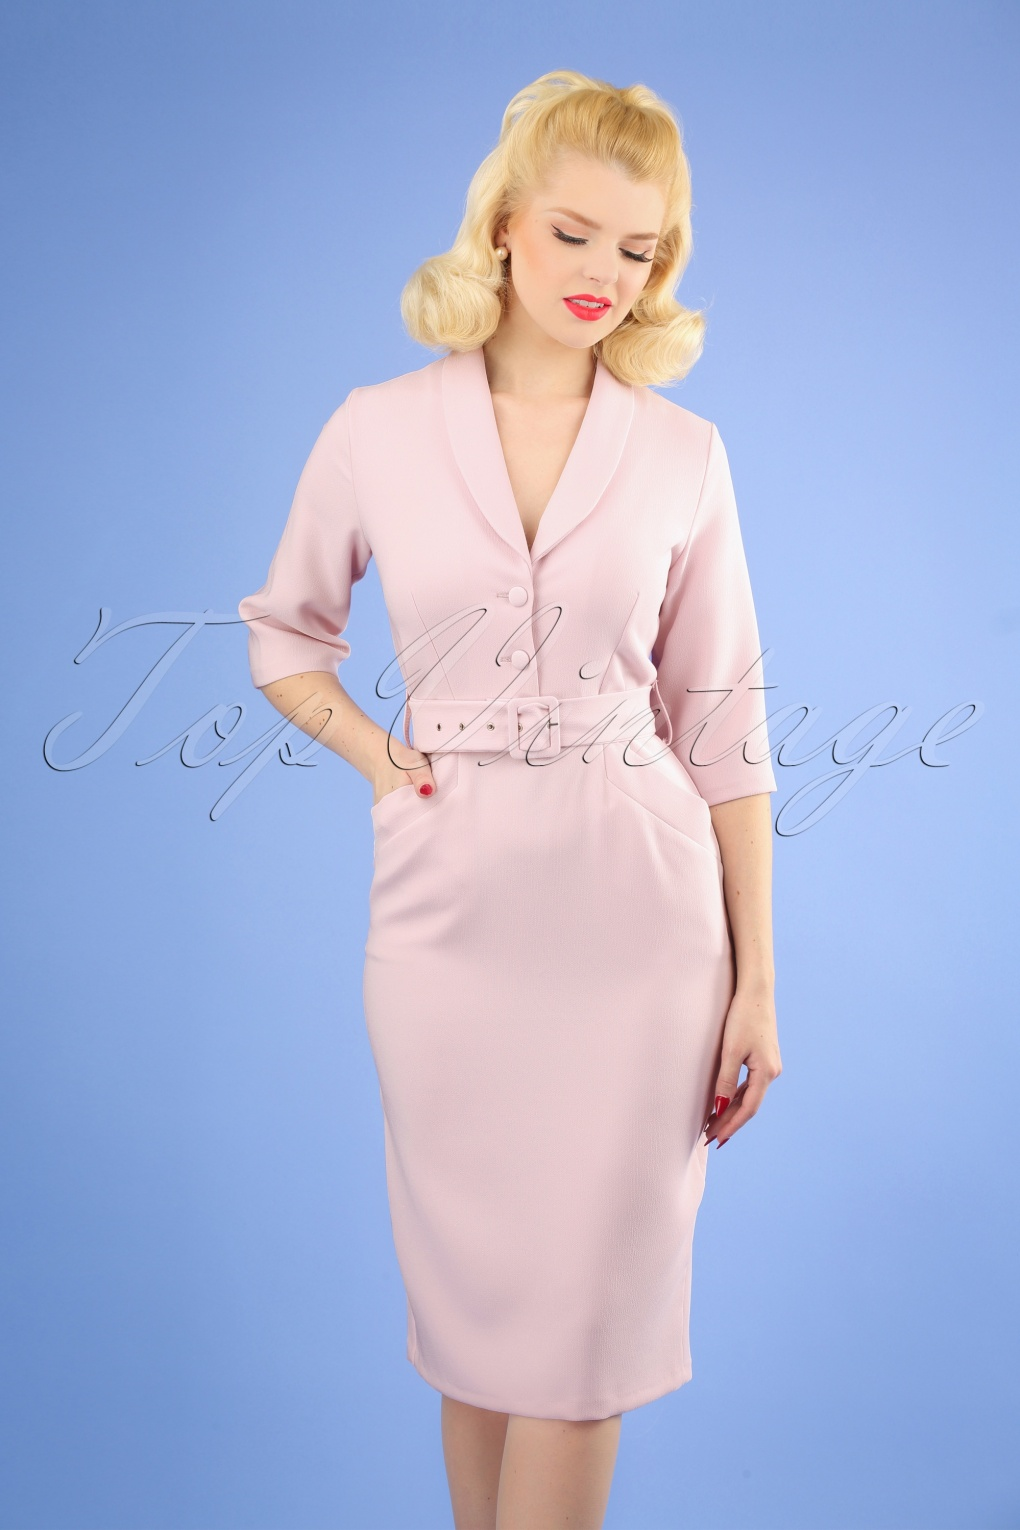 Authentic Natural 1950s Makeup History and Tutorial 60s Sherri Pencil Dress in Light Pink £81.19 AT vintagedancer.com